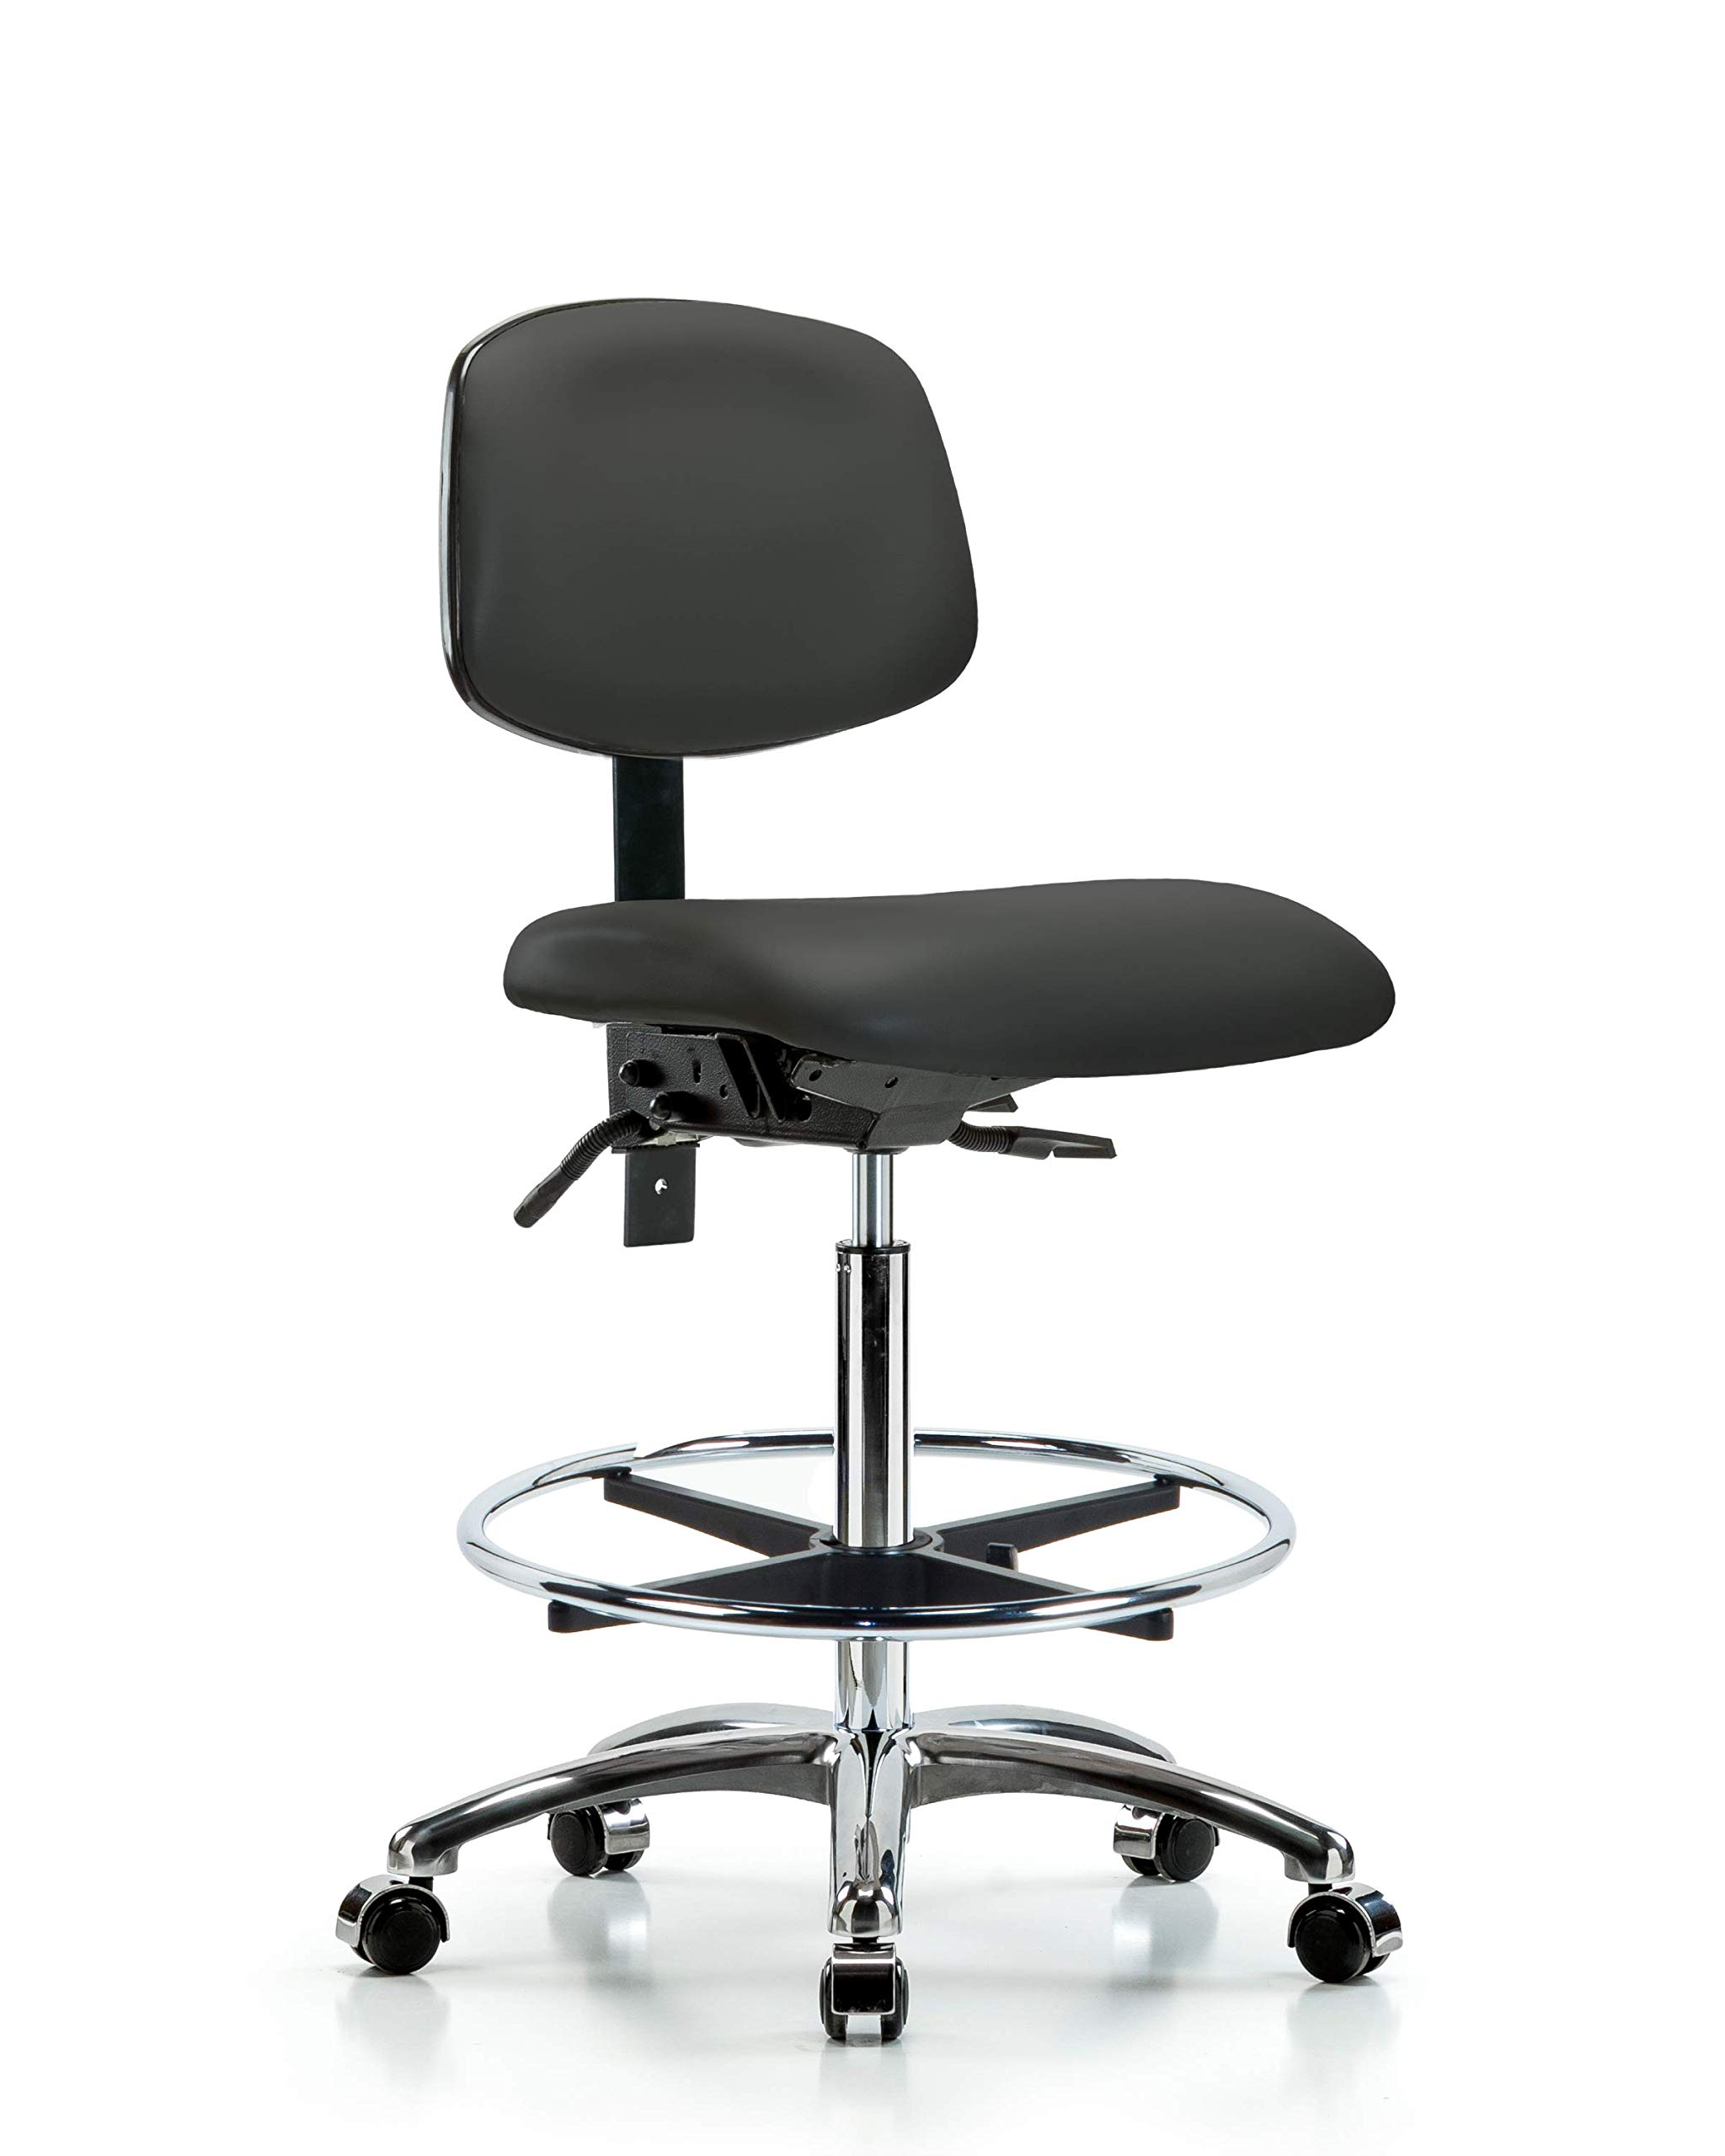 LabTech Seating LT44532 High Bench Chair, Vinyl, Chrome Base/Foot Ring/Casters, Charcoal